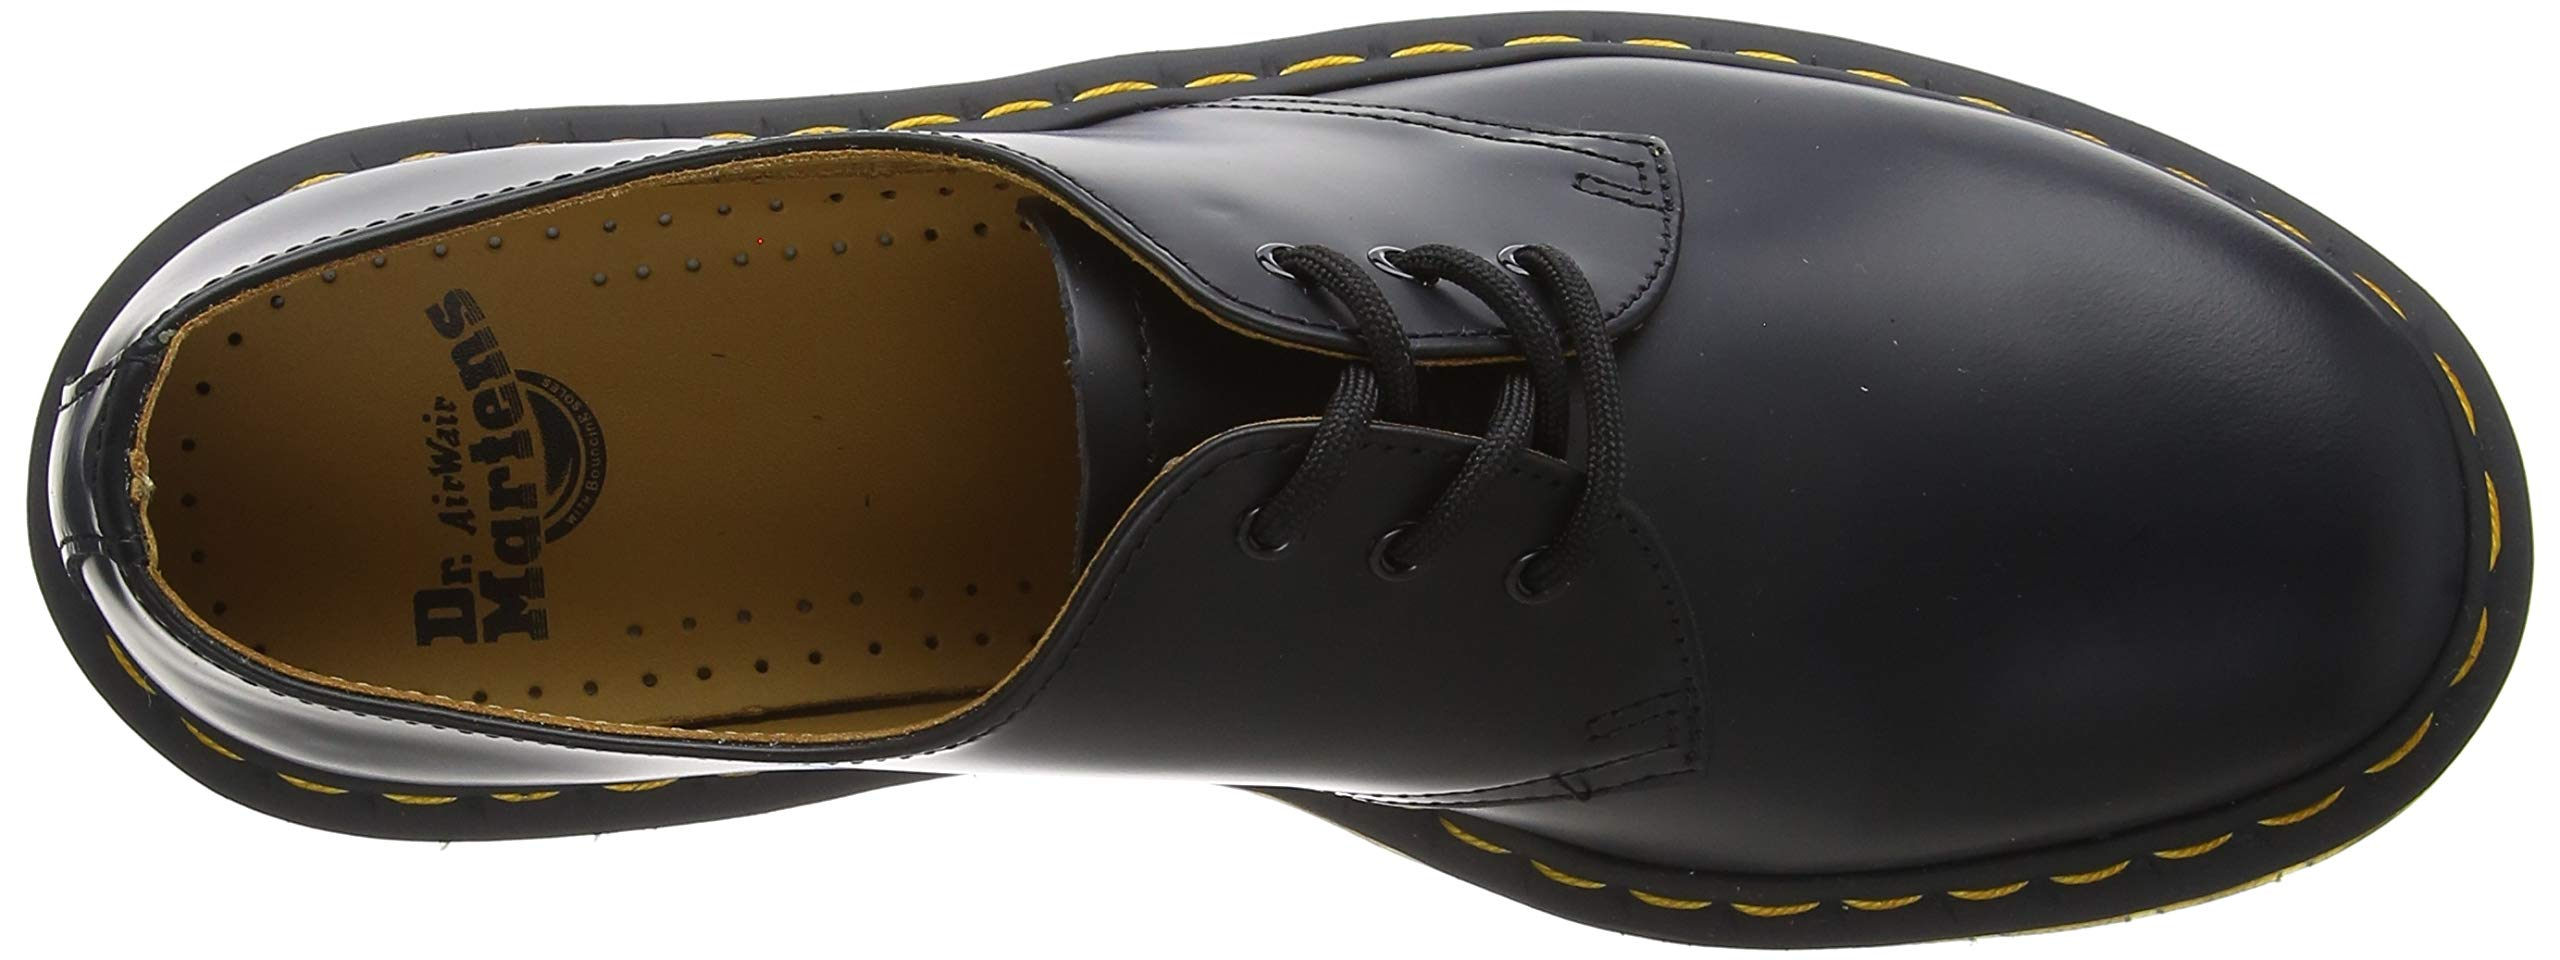 Dr. Martens – Men and Women 1461 Black Nappa 3-Eye Leather Oxford Shoe